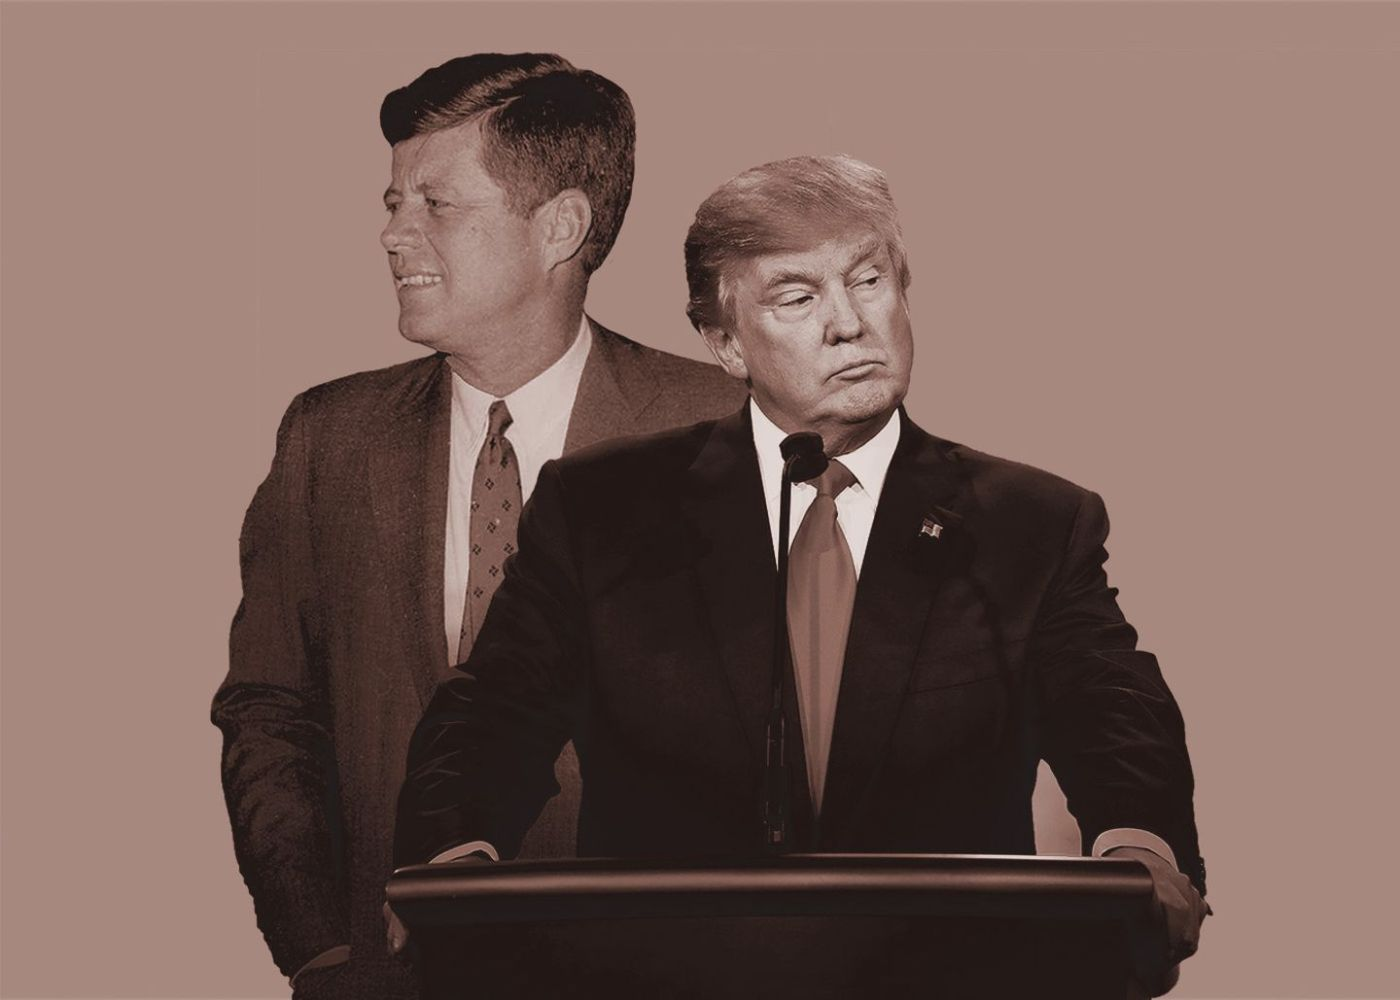 Donald Trump and John F. Kennedy are more similar than you think ...